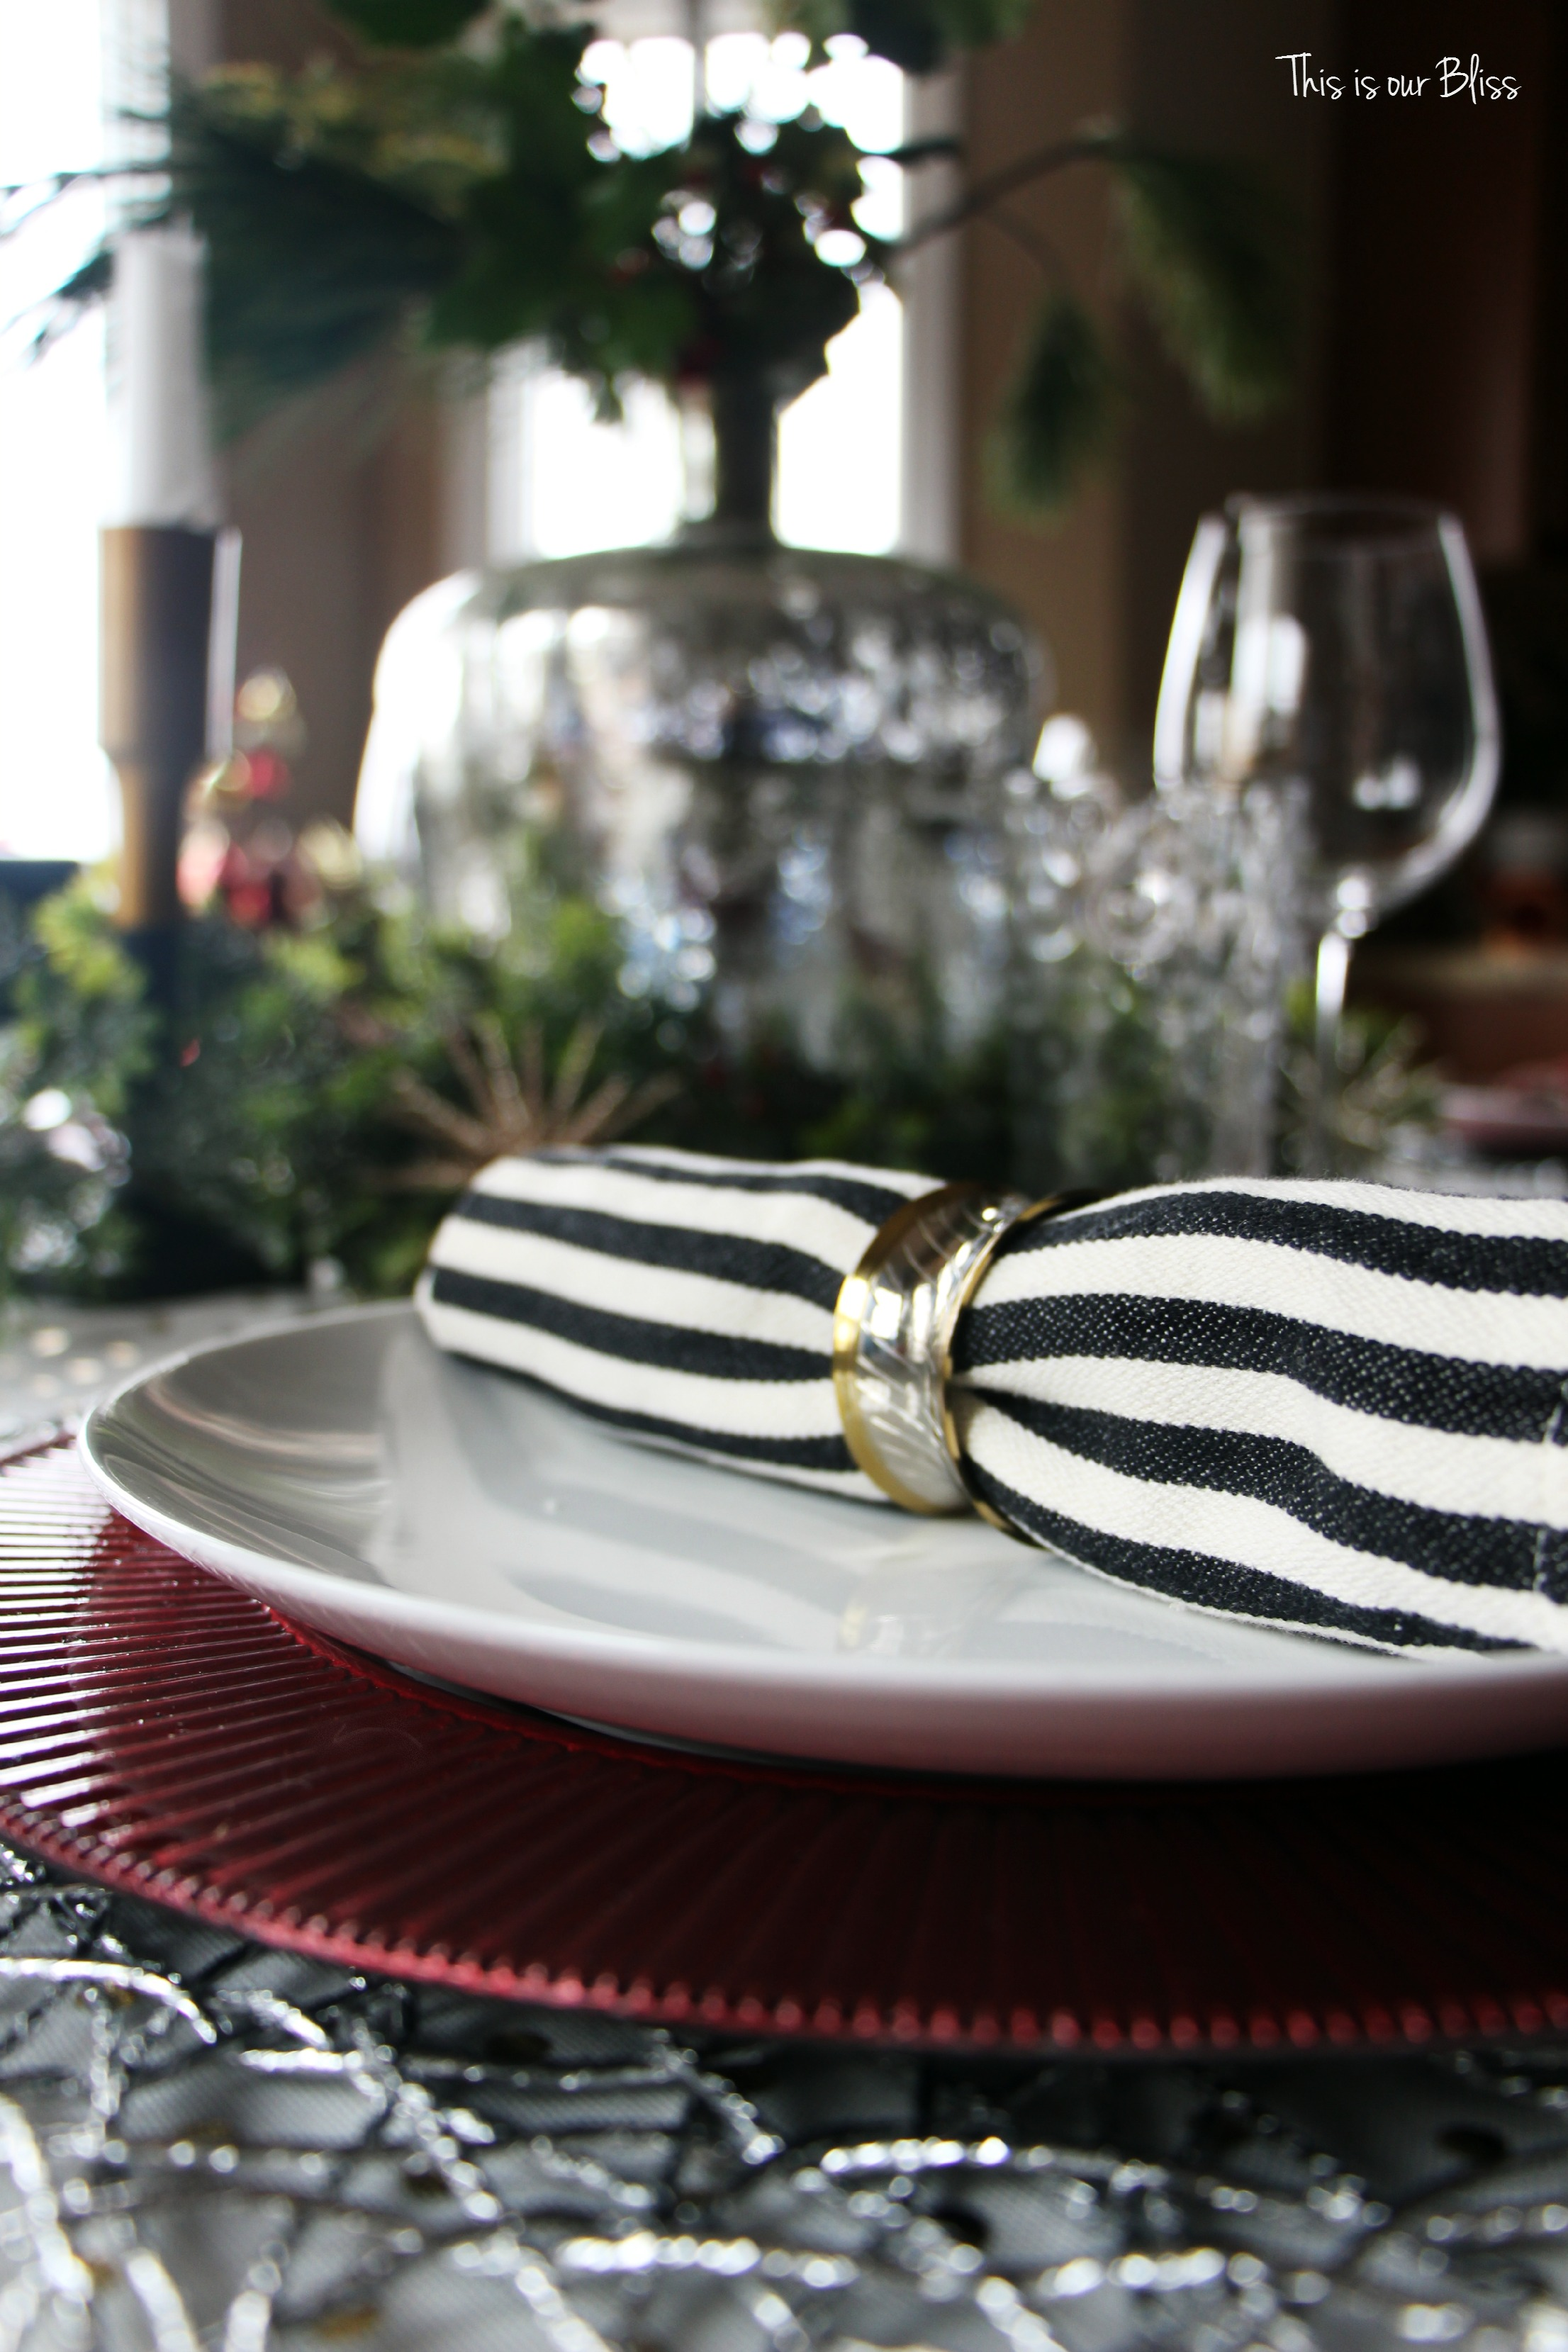 Black and white stripe charger plates - Next I Put Out The Metallic Red Ruffle Charger Plates I Got At Michaels For 60 Off And Then An Additional 20 Off My Entire Purchase Making Them Cost